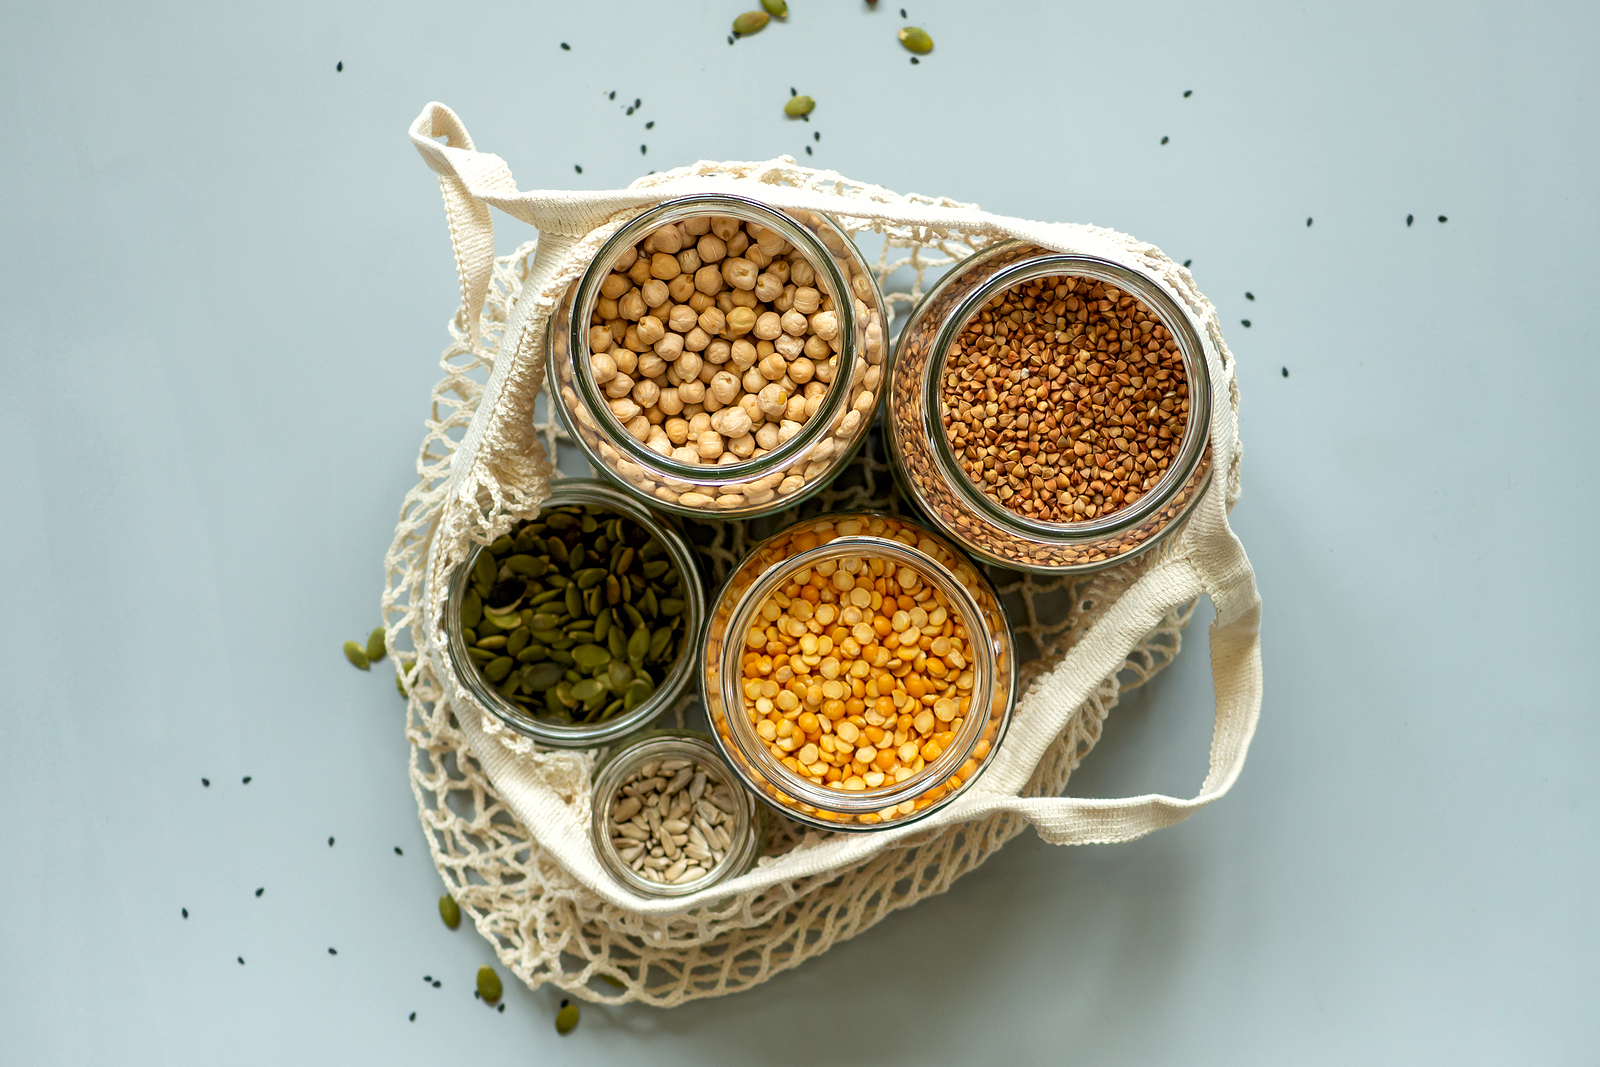 Stocking your pantry with these essential items will not only save you the headache of missing an ingredient for a recipe, but also ensure optimal nutrition no matter the season!